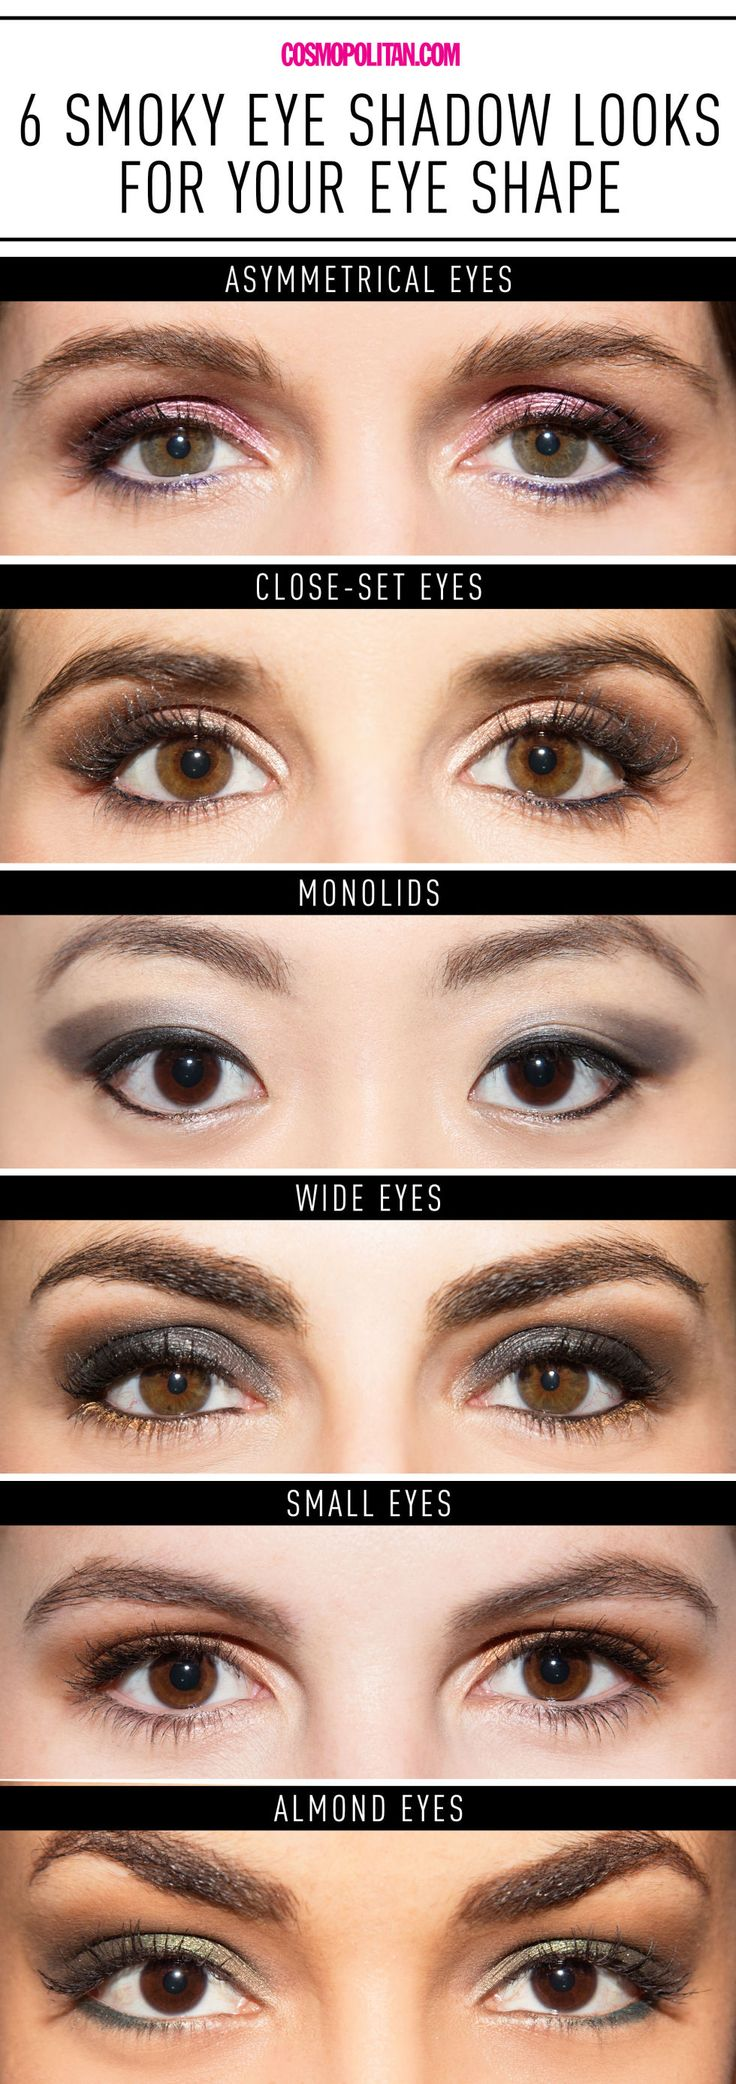 Best 25 Eye Shapes Ideas On Pinterest Shapes Of Eyes